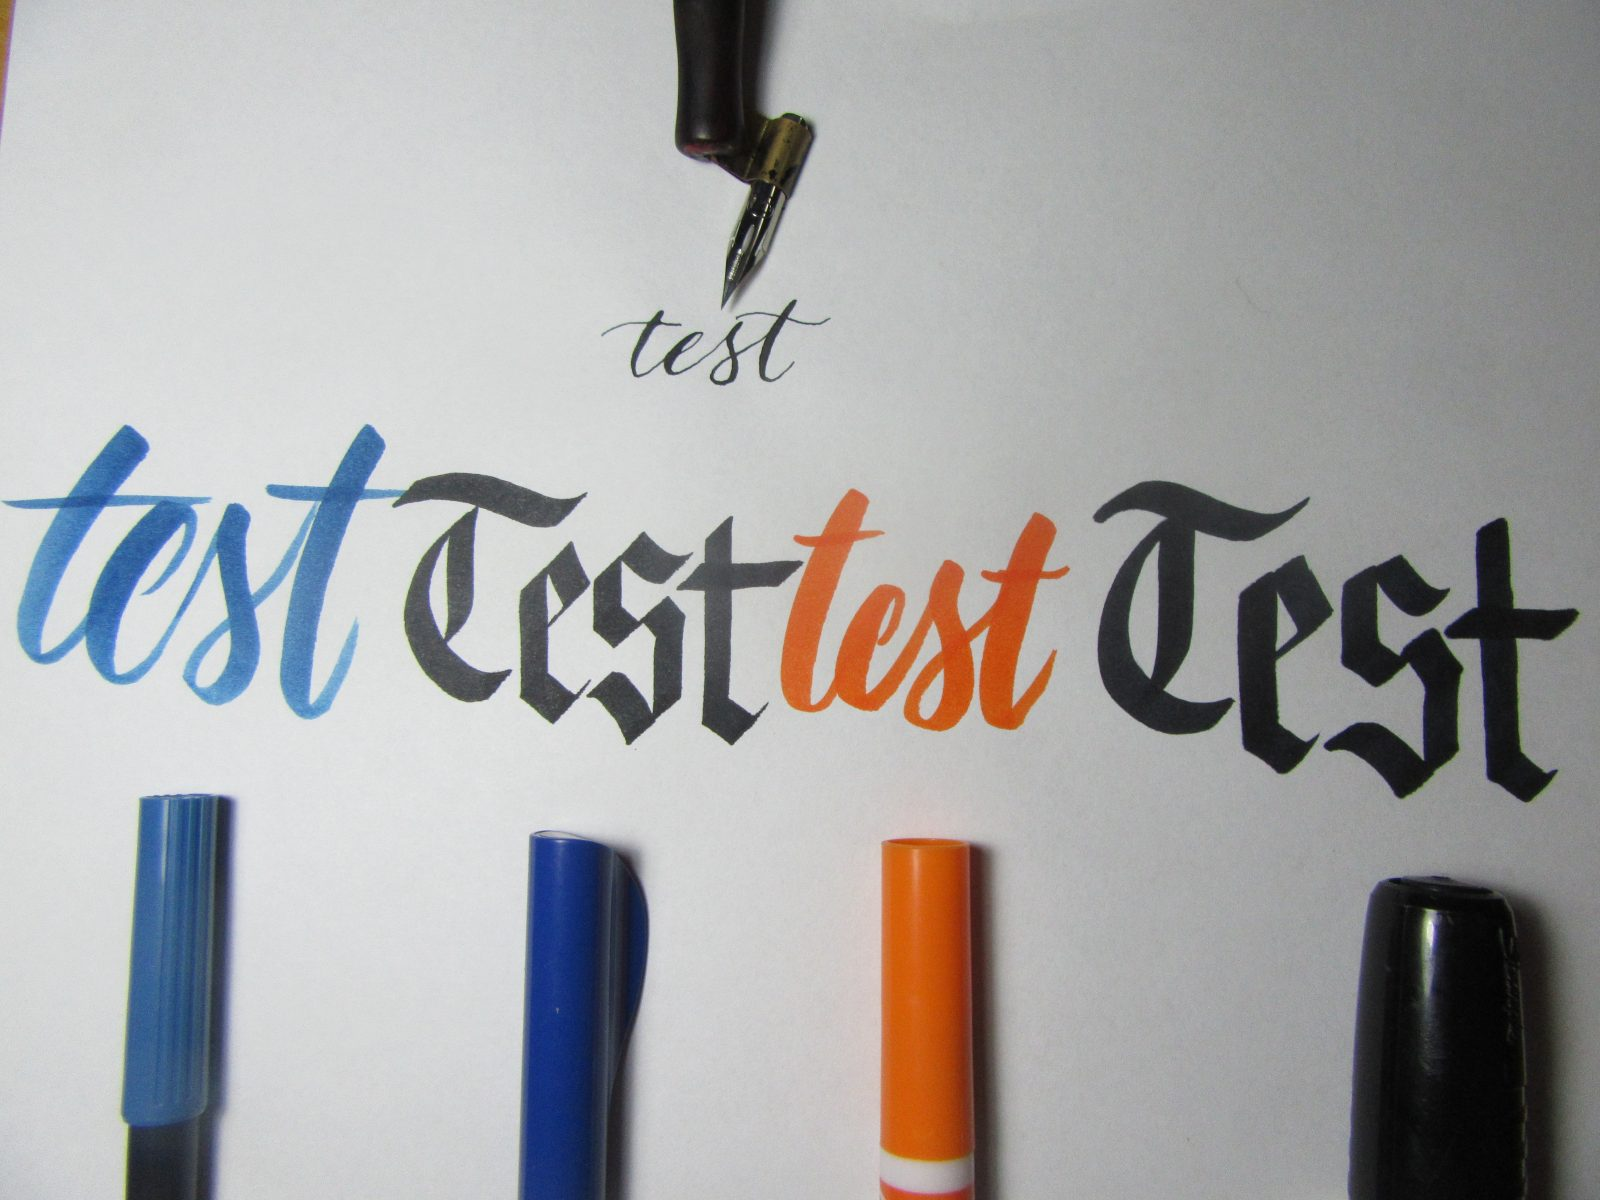 Best calligraphy paper options compared side by side